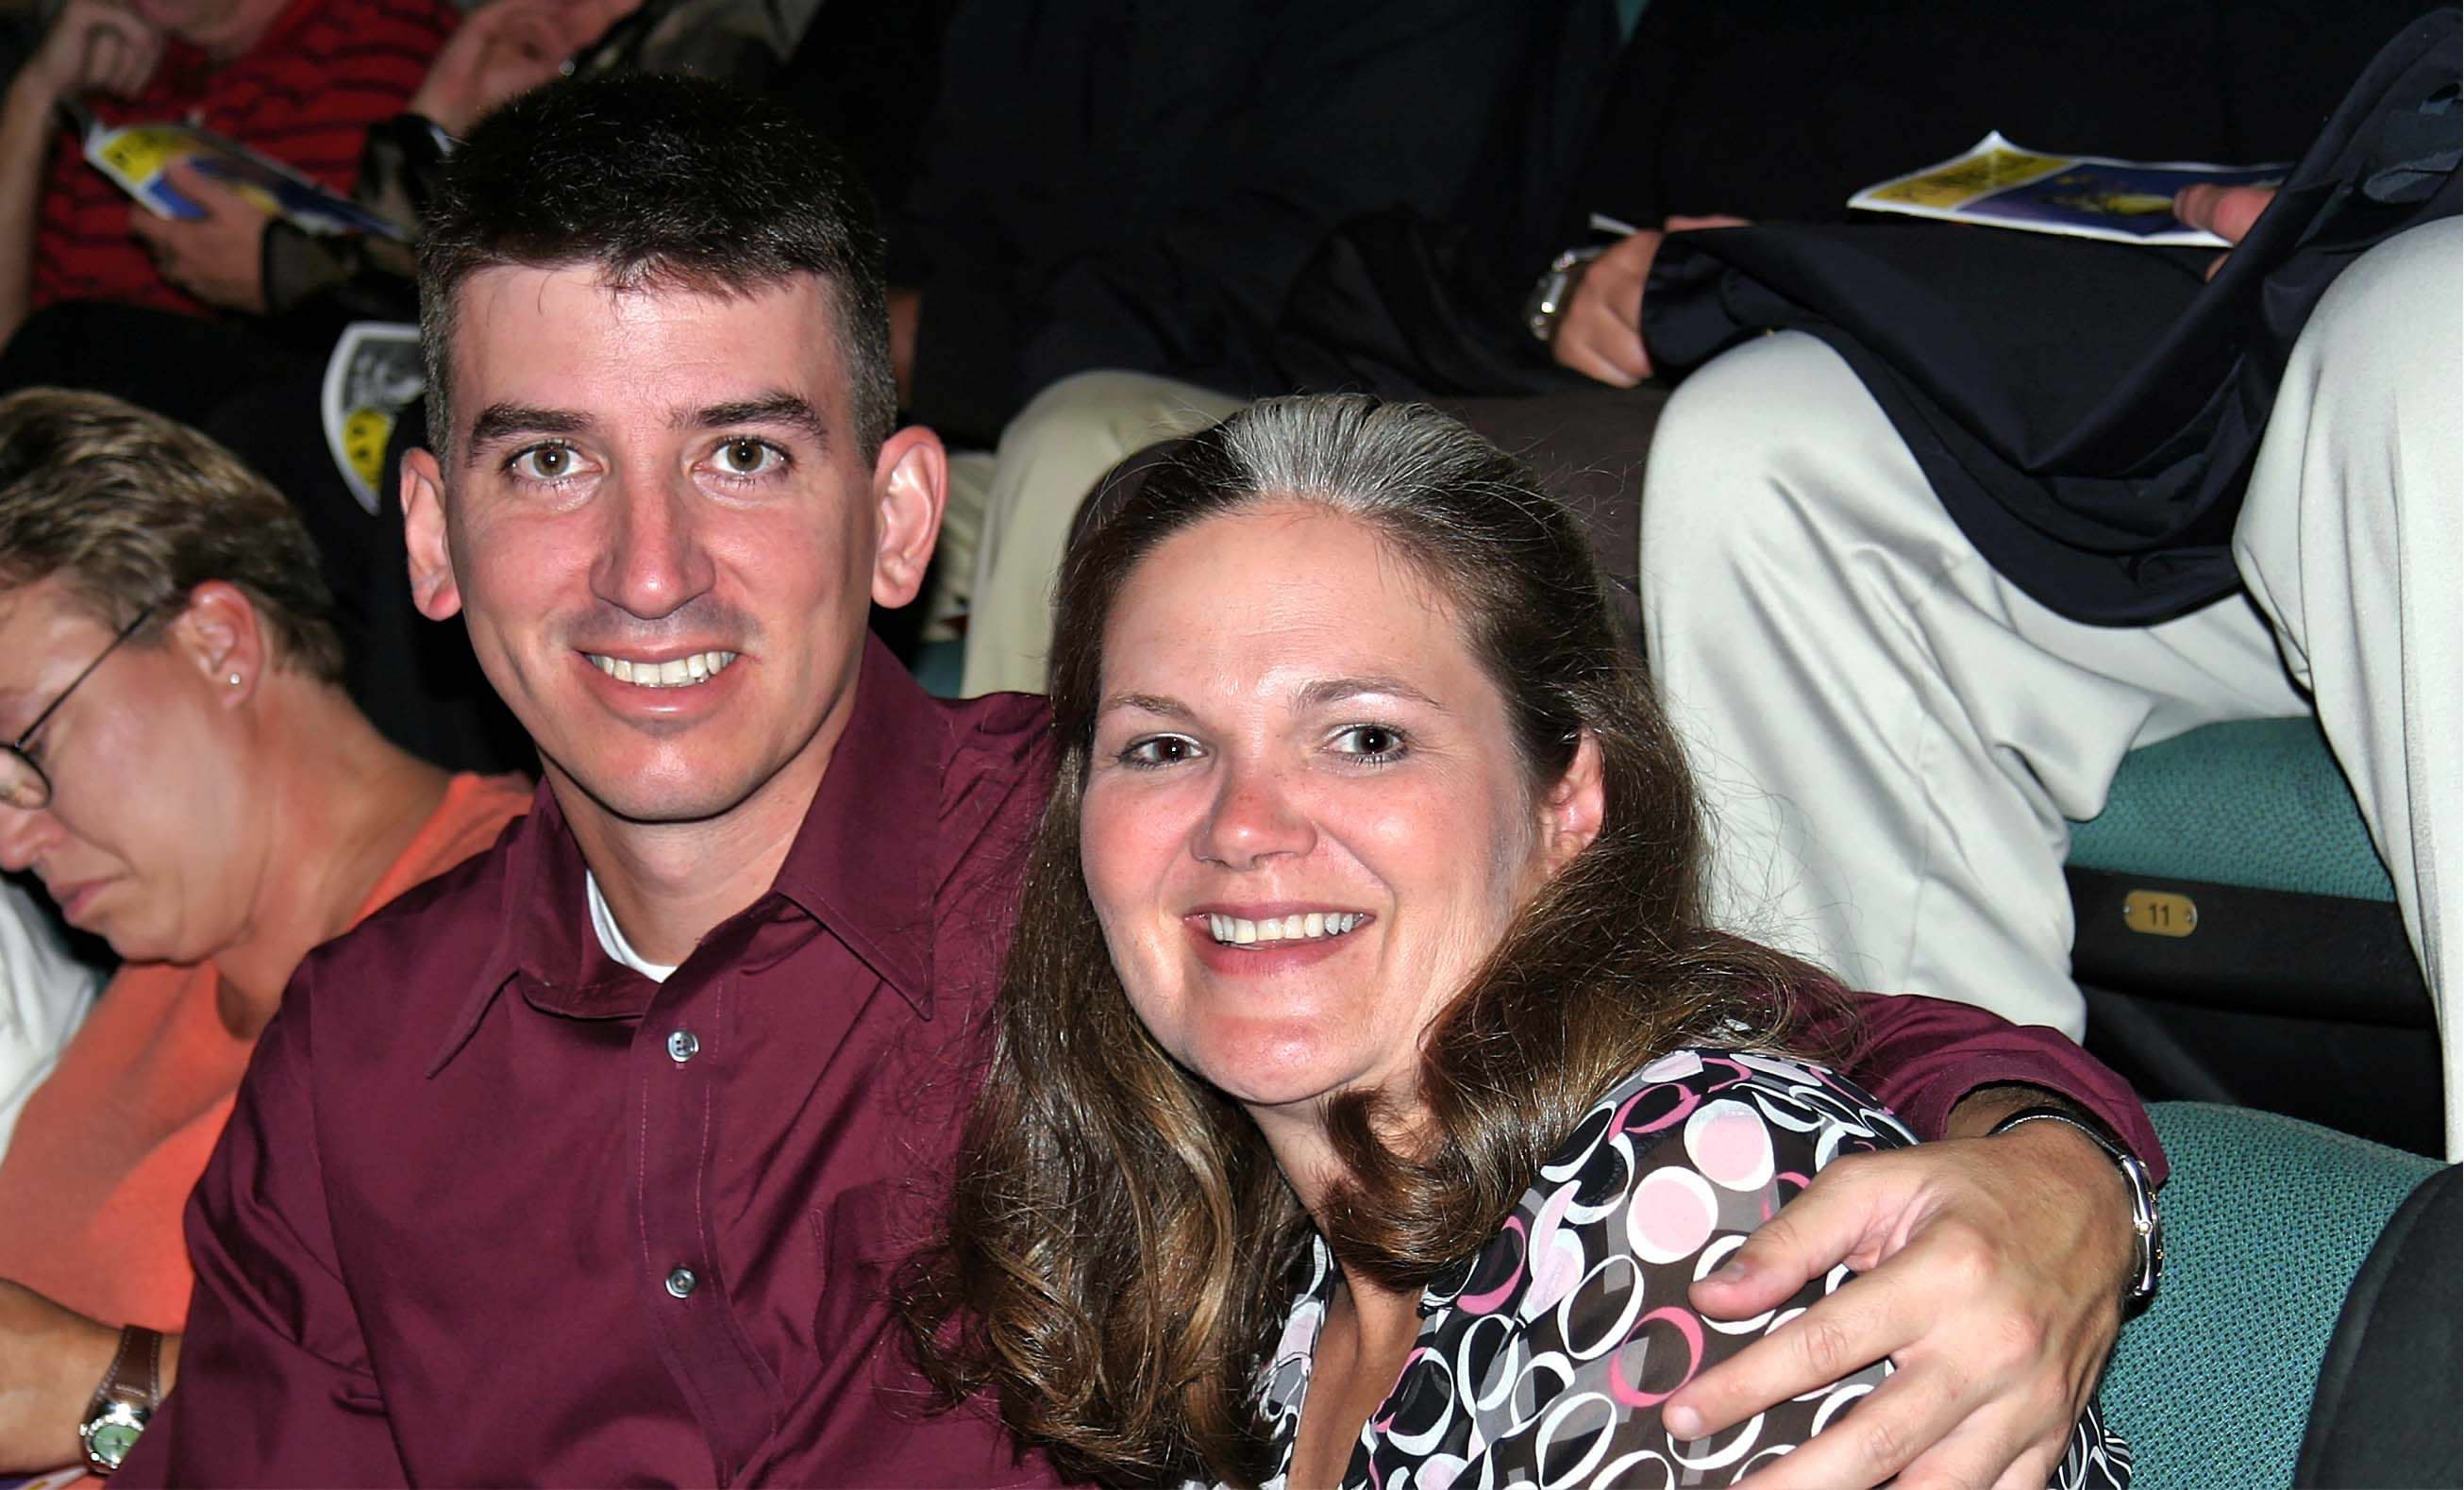 Caption: Kristen Christy poses with her husband Don in a 2005 photo. Don, an Air Force lieutenant colonel, died by suicide in 2008., Credit: Kristen Christy